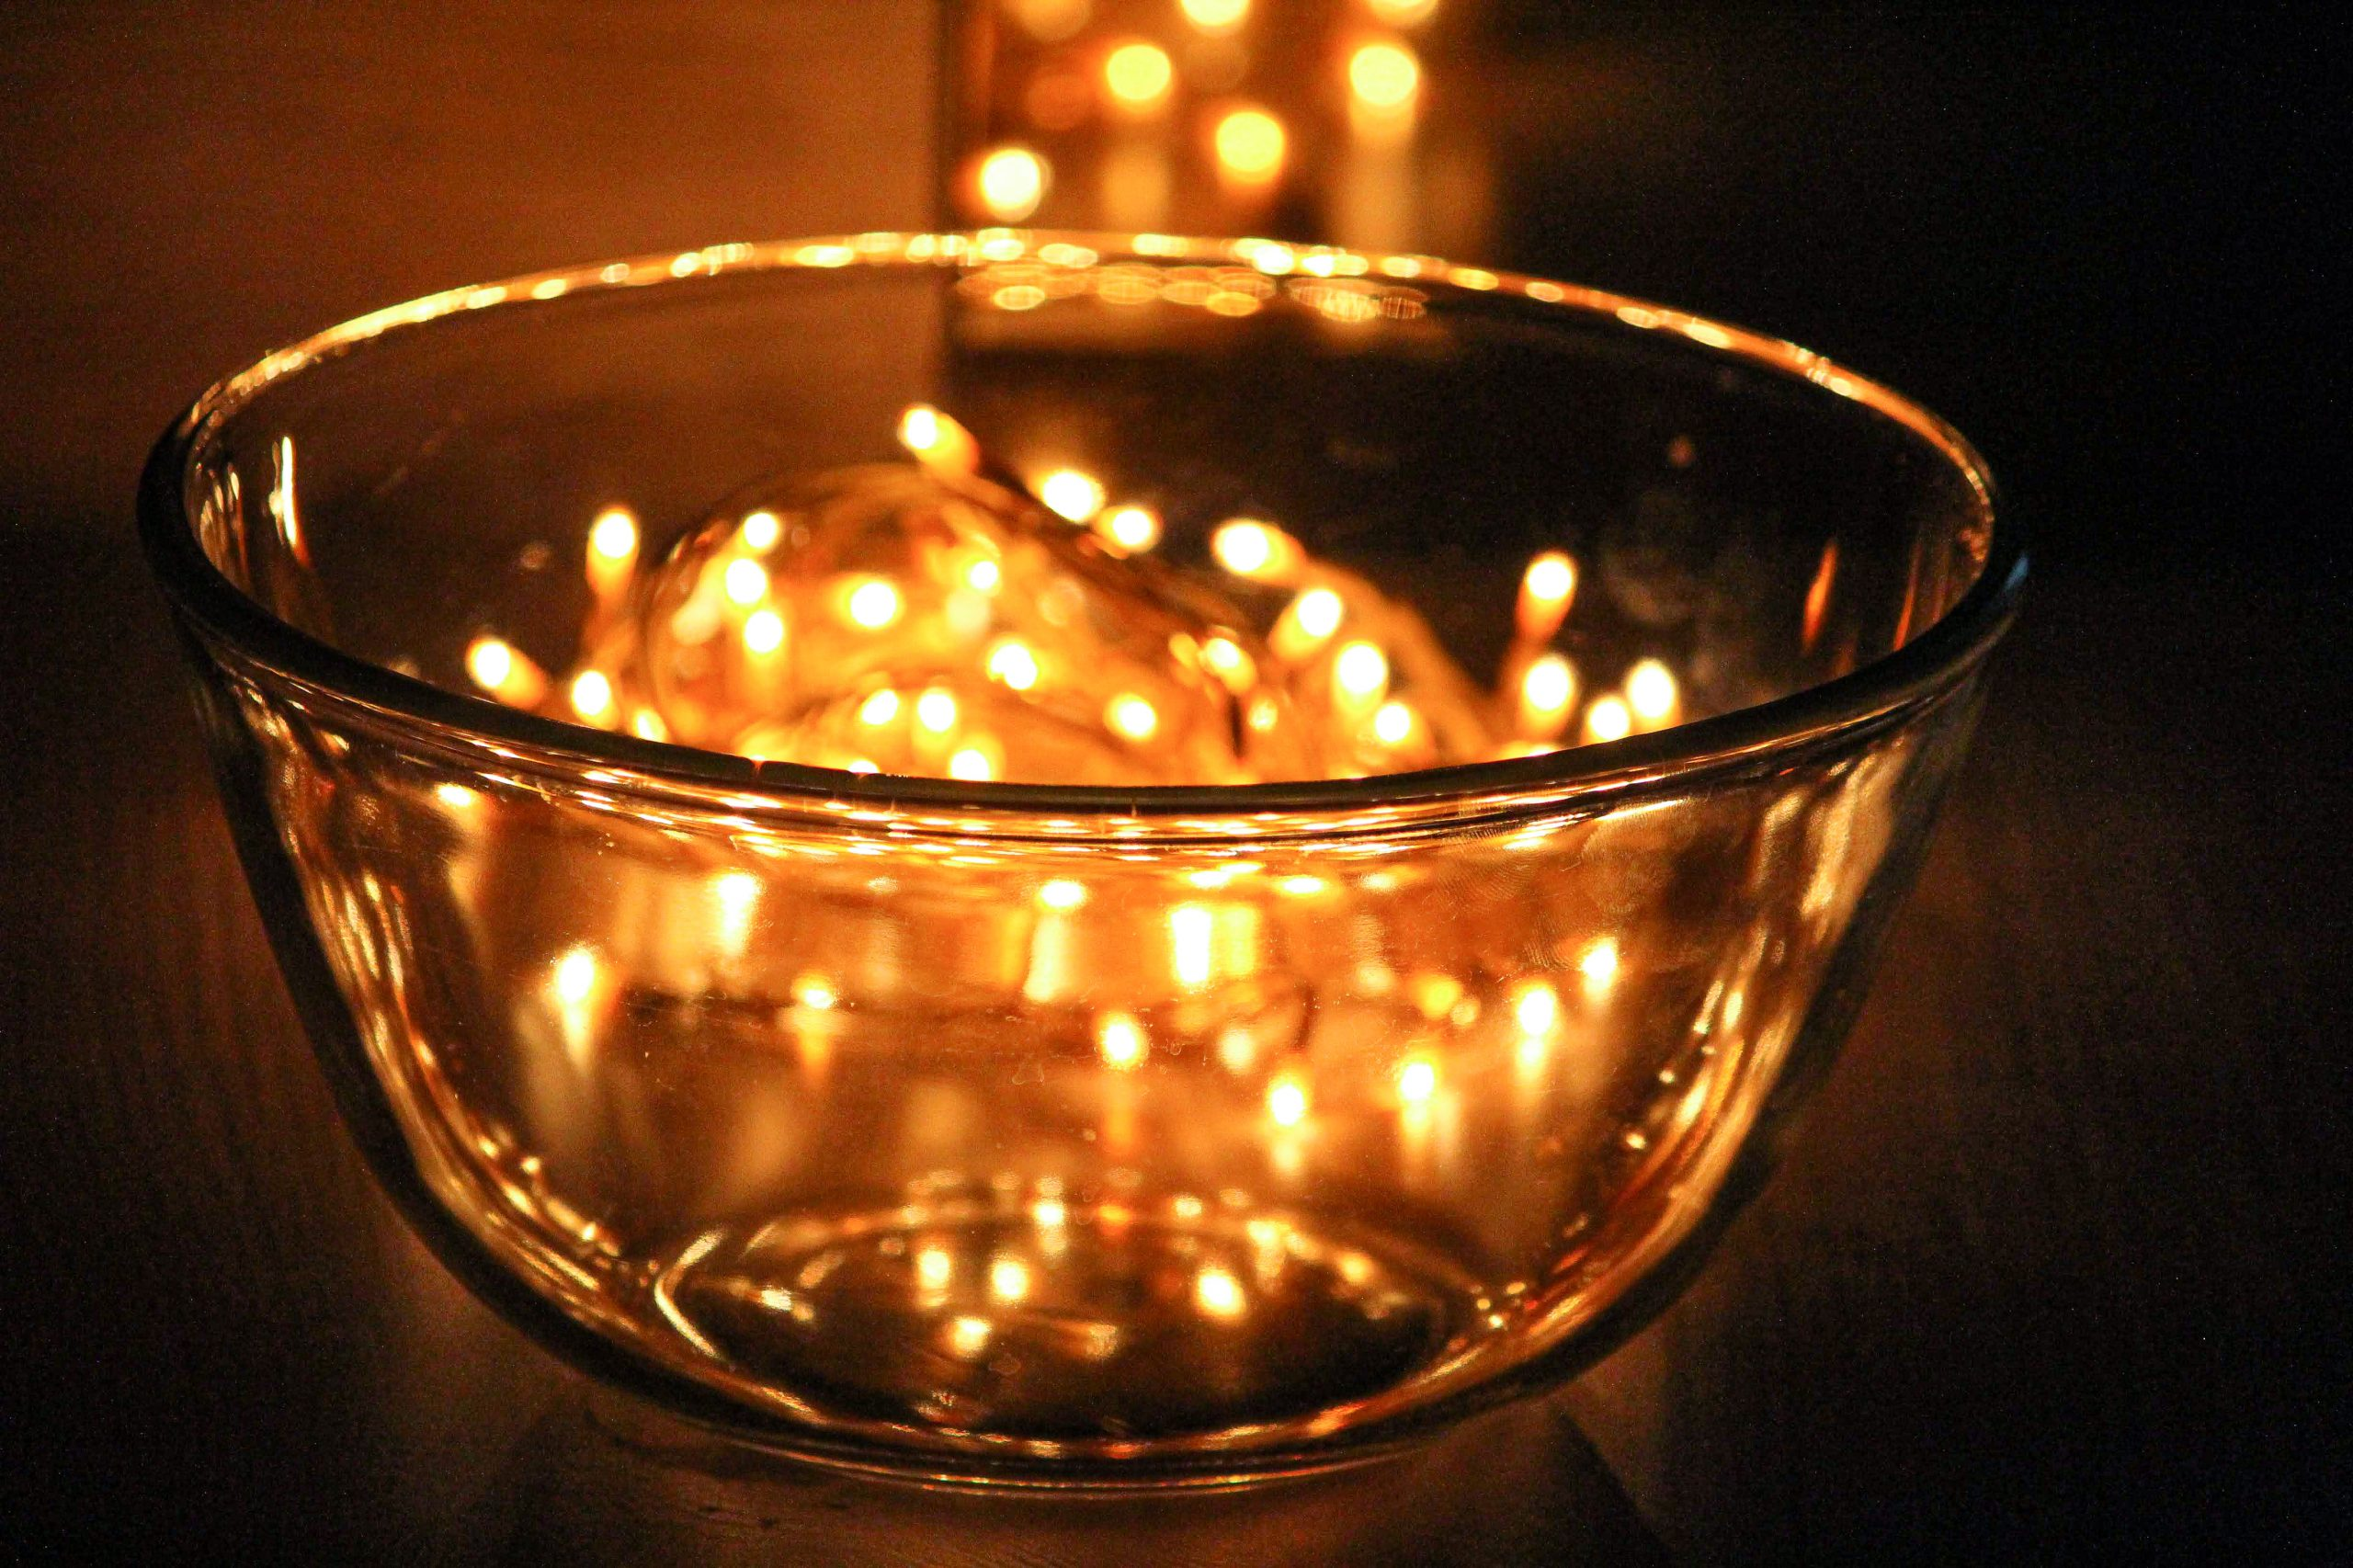 ferry lights in a bowl